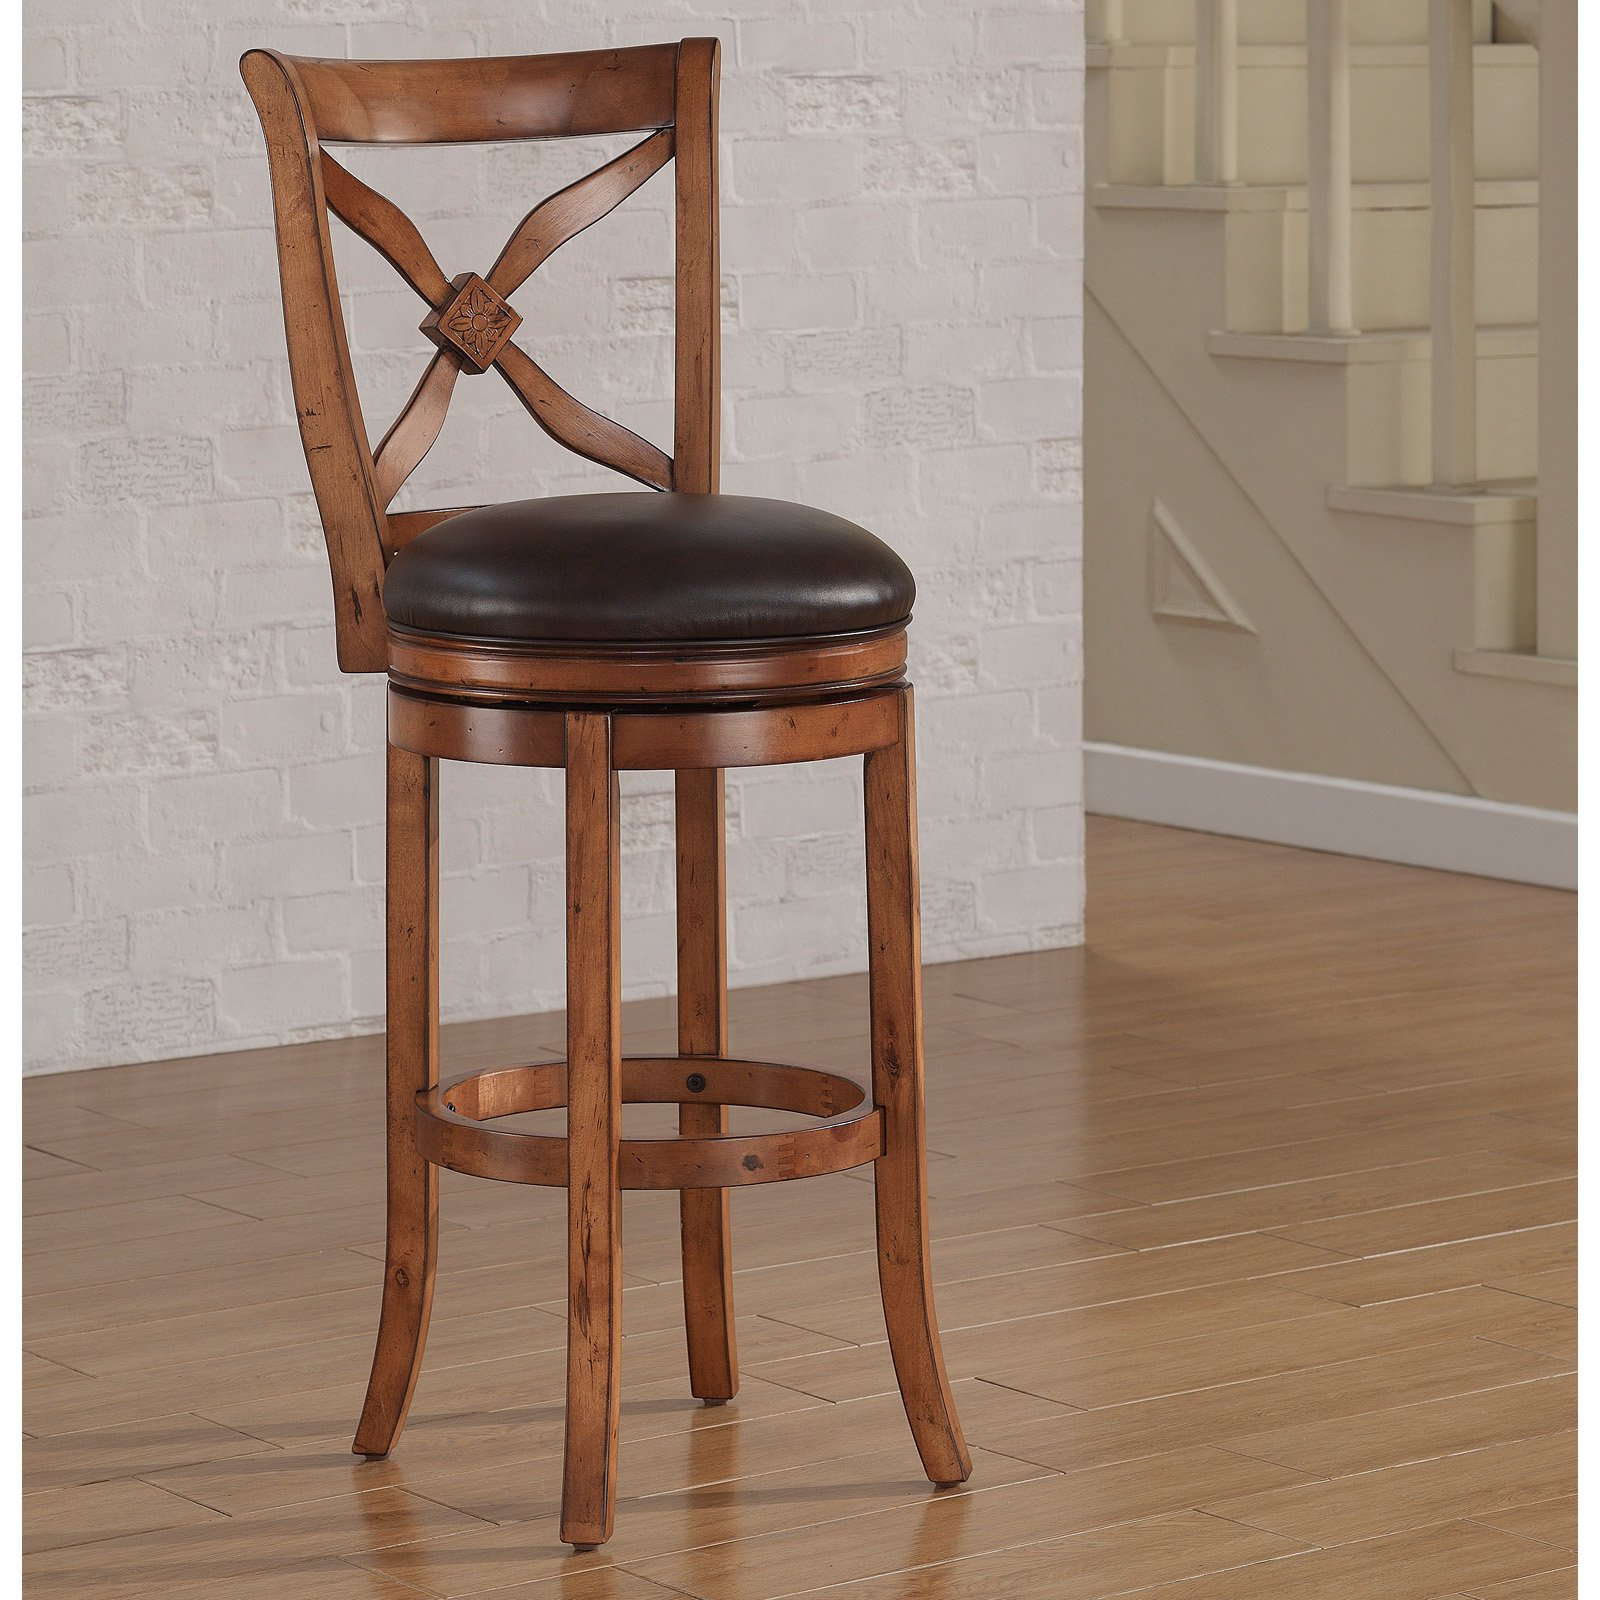 American Woodcrafters Provence Extra Tall Bar Stool Light Oak by American Woodcrafters